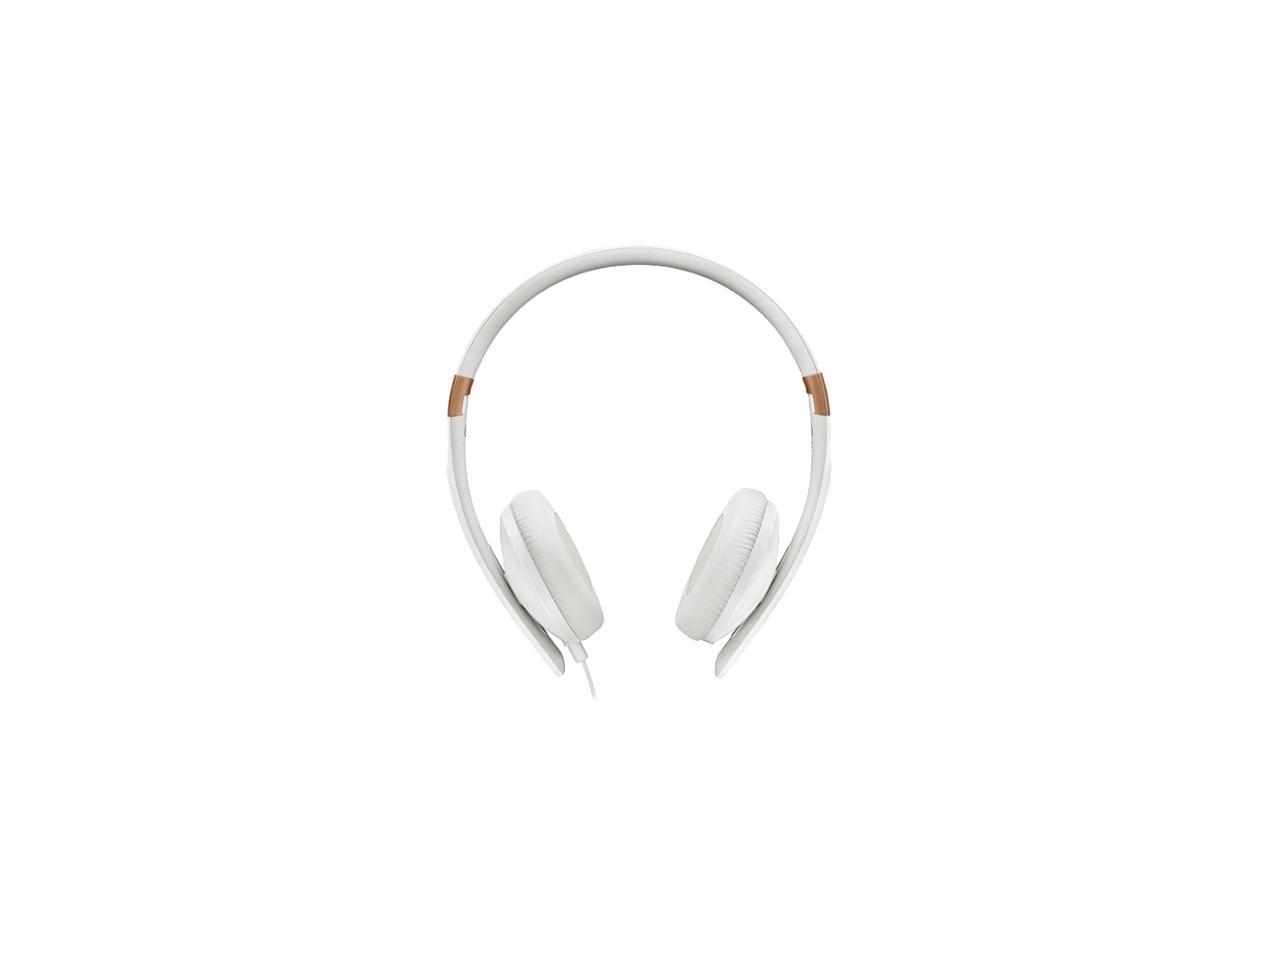 Sennheiser HD 2.30G On-Ear Headphones (Android Devices) $24.99